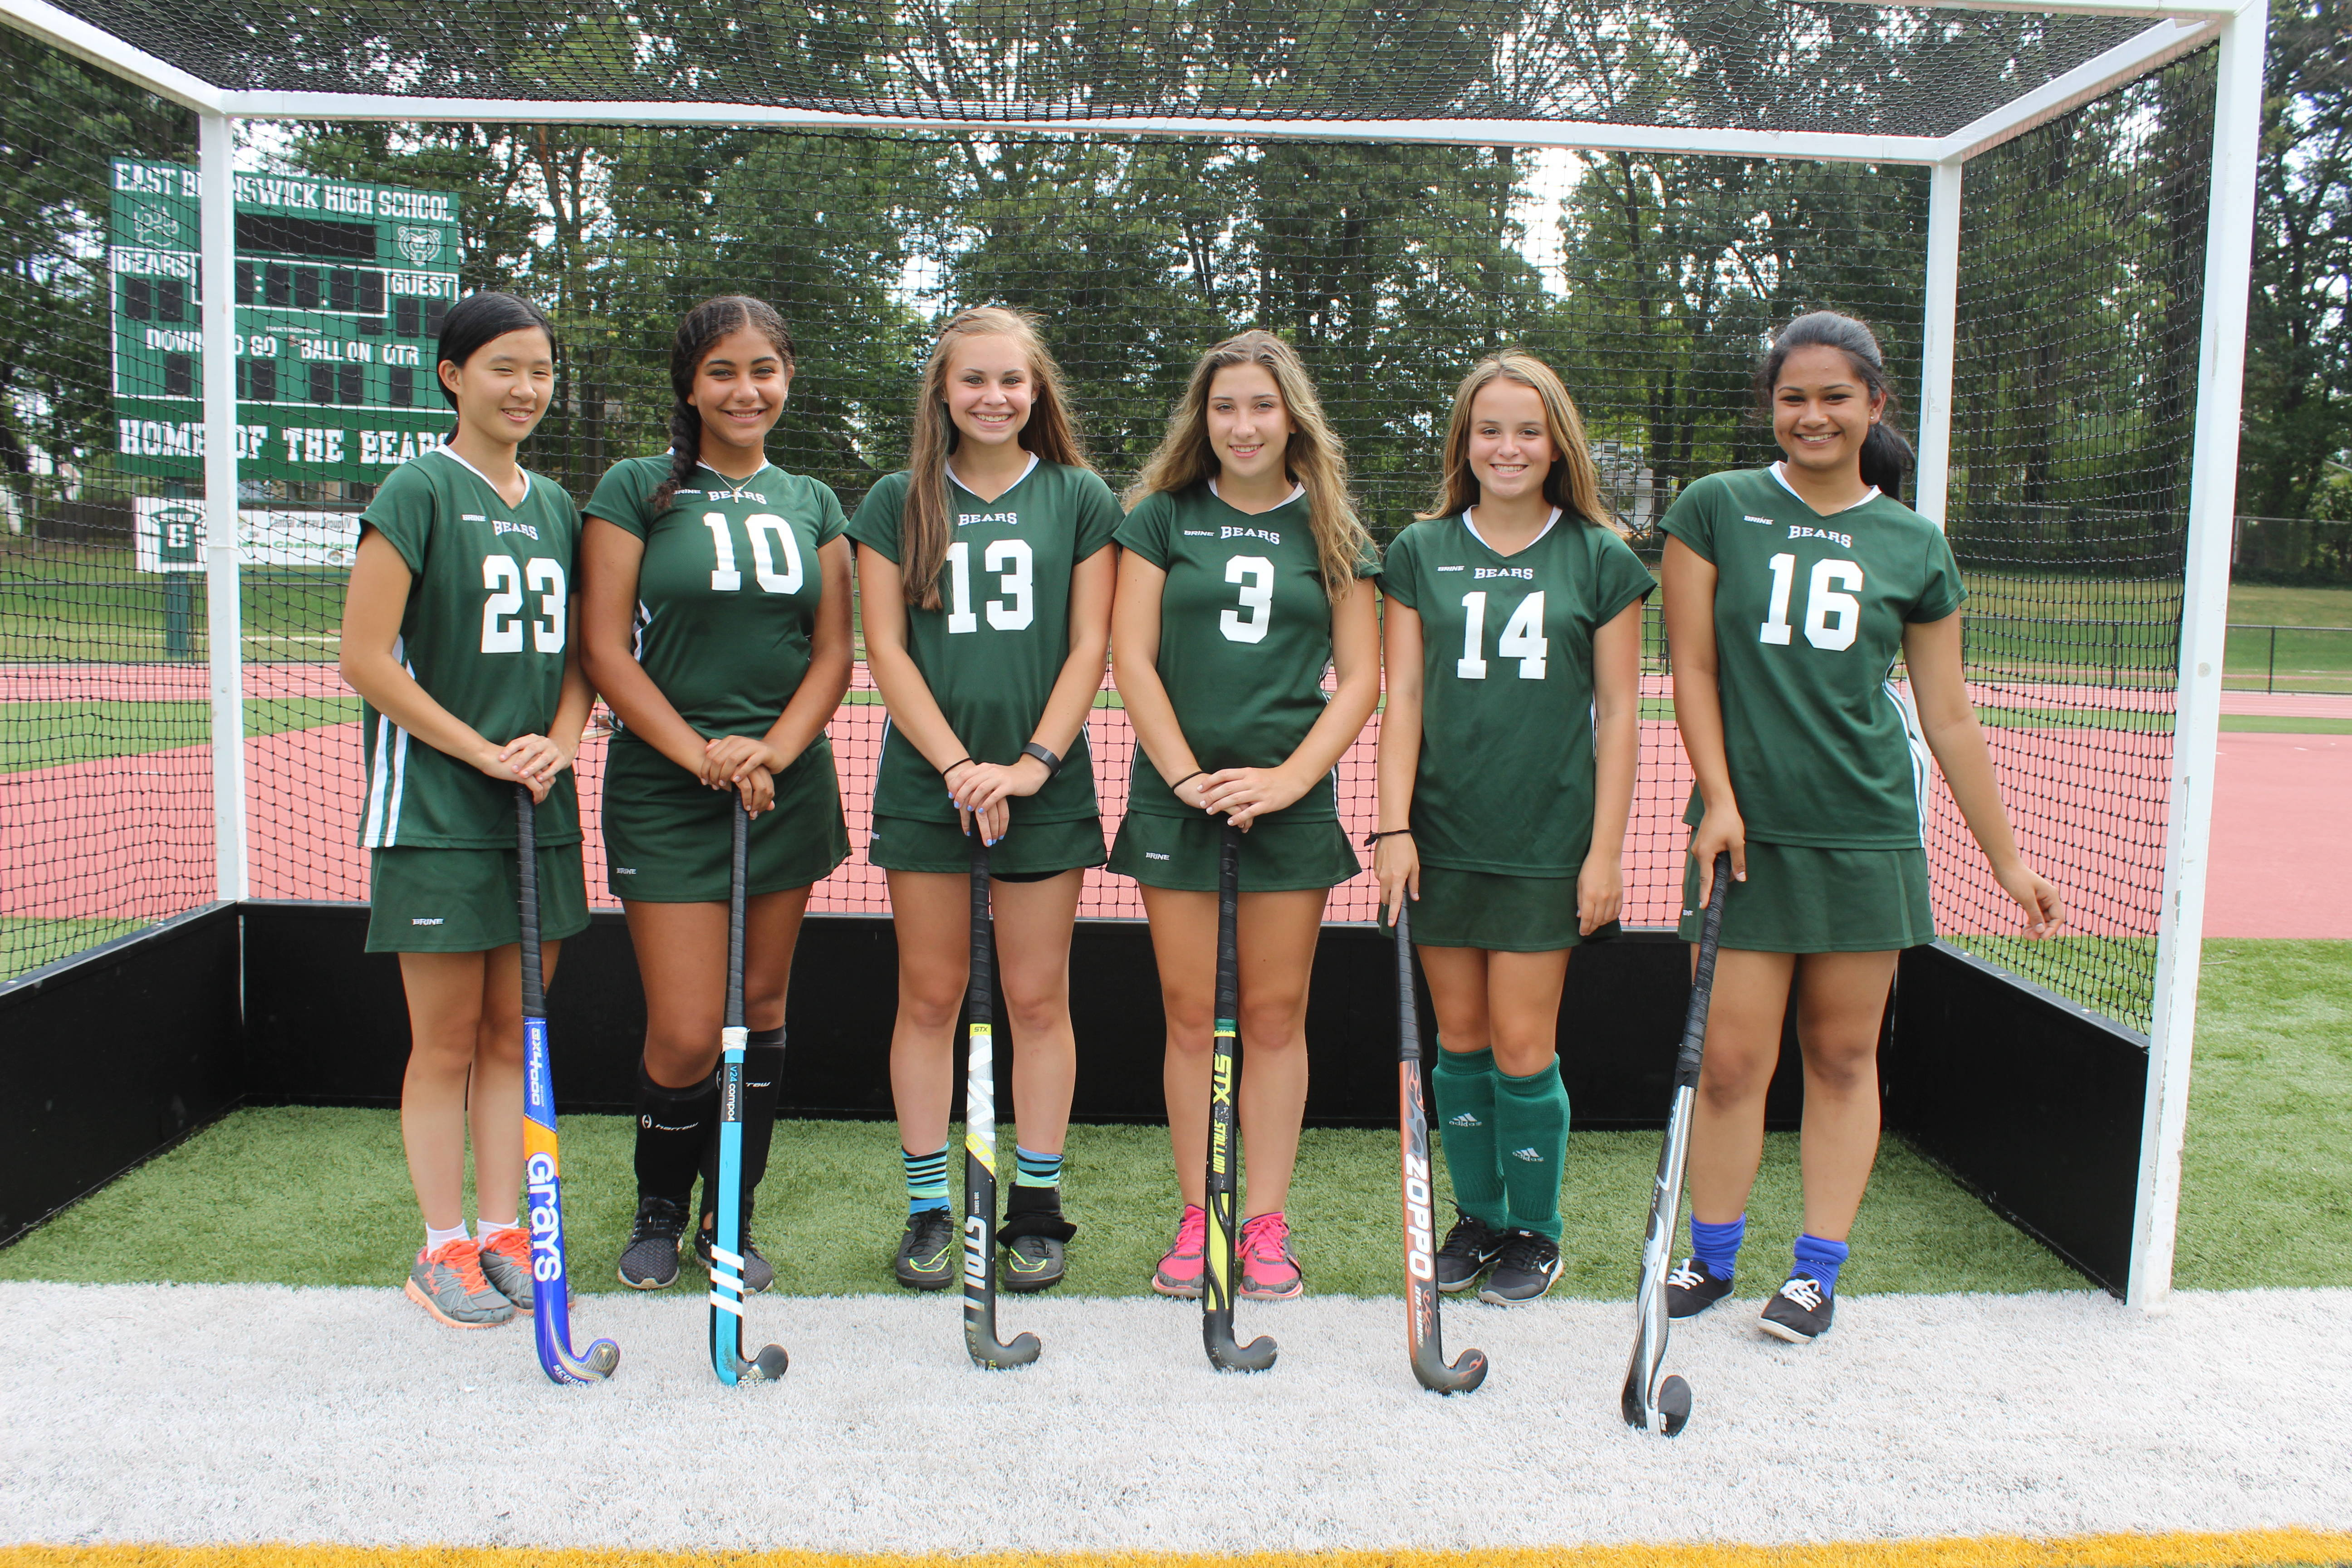 Field Hockey Mad Hatters Help Kids With Cancer News Tapinto